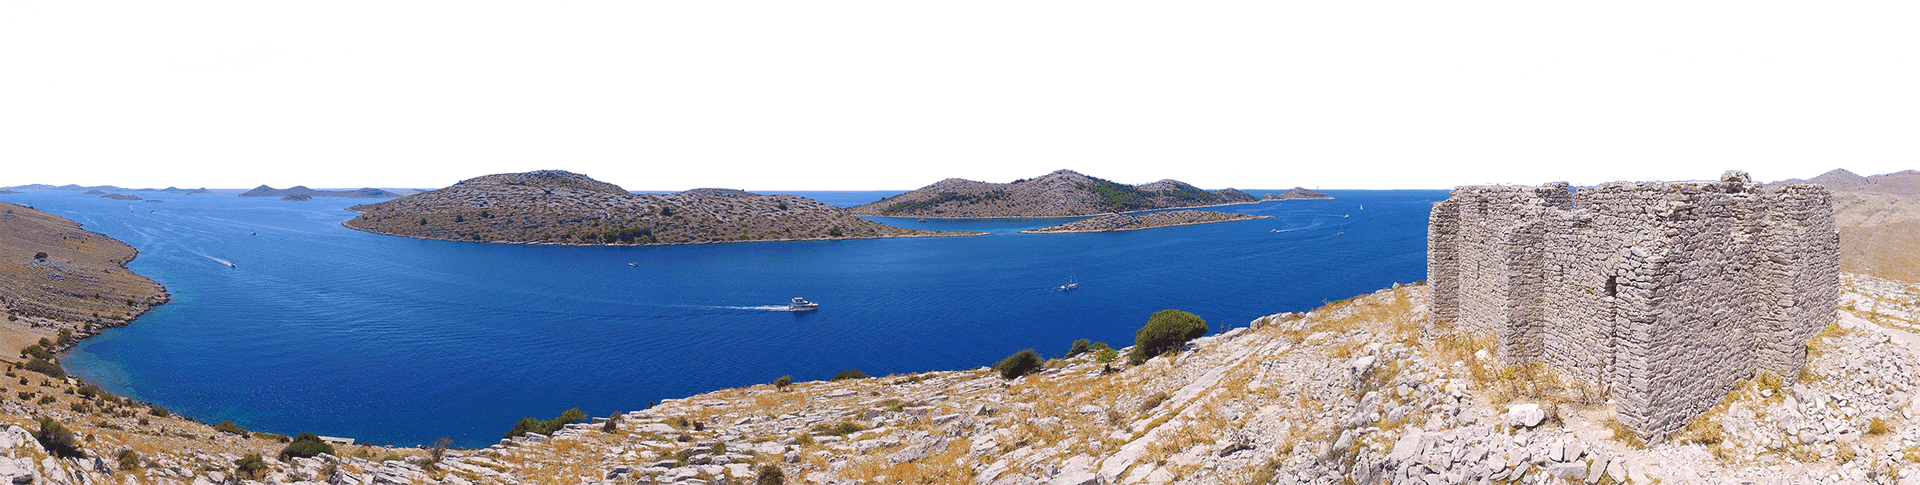 Panoramic photo taken from the air showing Tarac fortress and Kornati islands with boats passing by